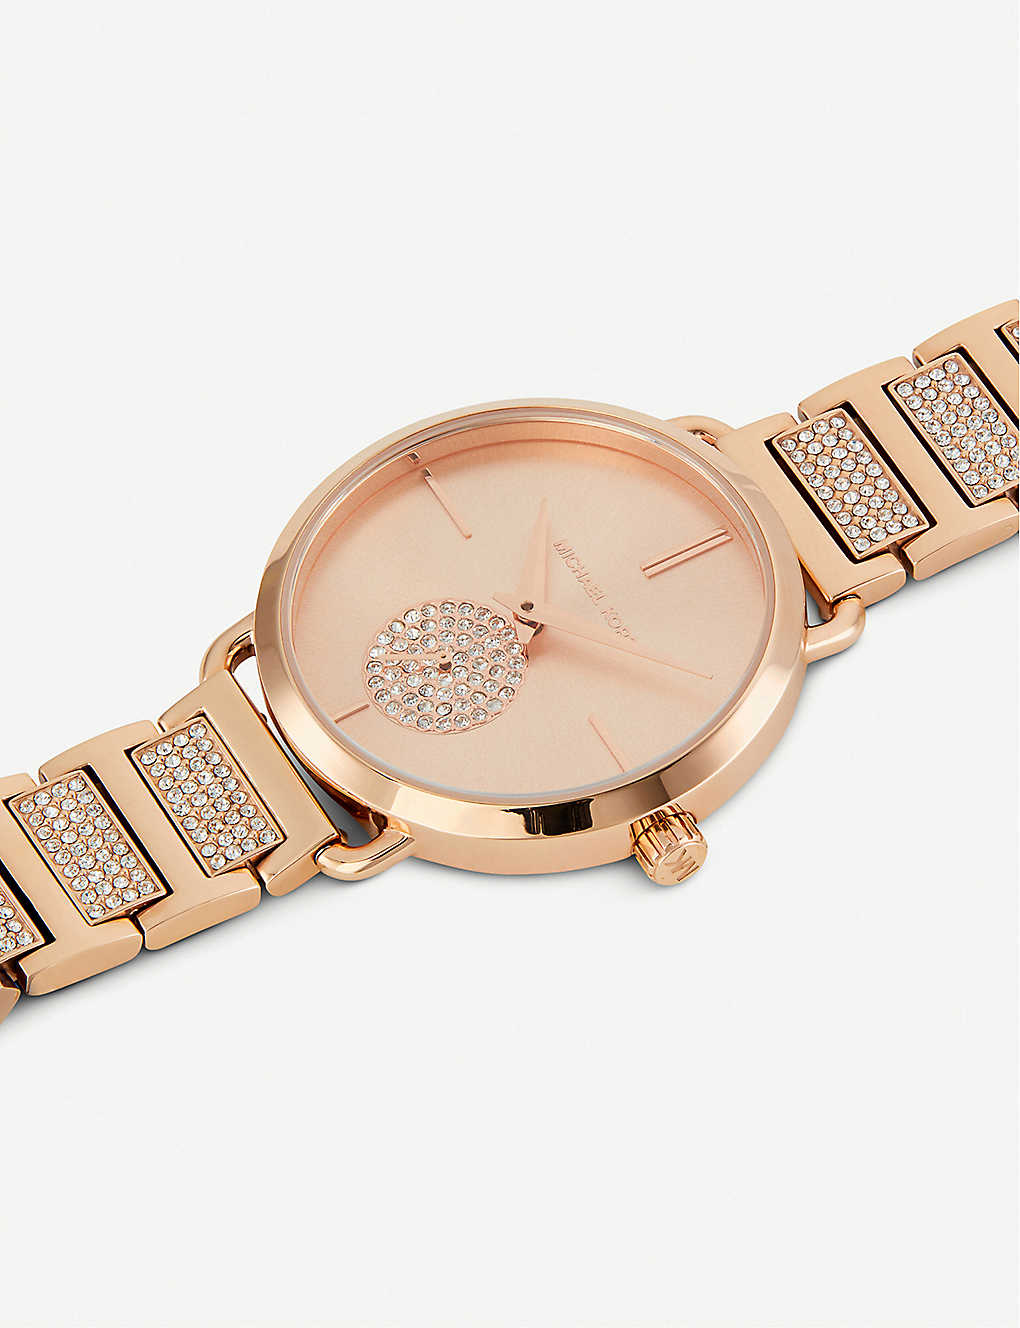 ded2a4970101 MICHAEL KORS - MK2776 Portia rose-gold toned stainless steel watch ...